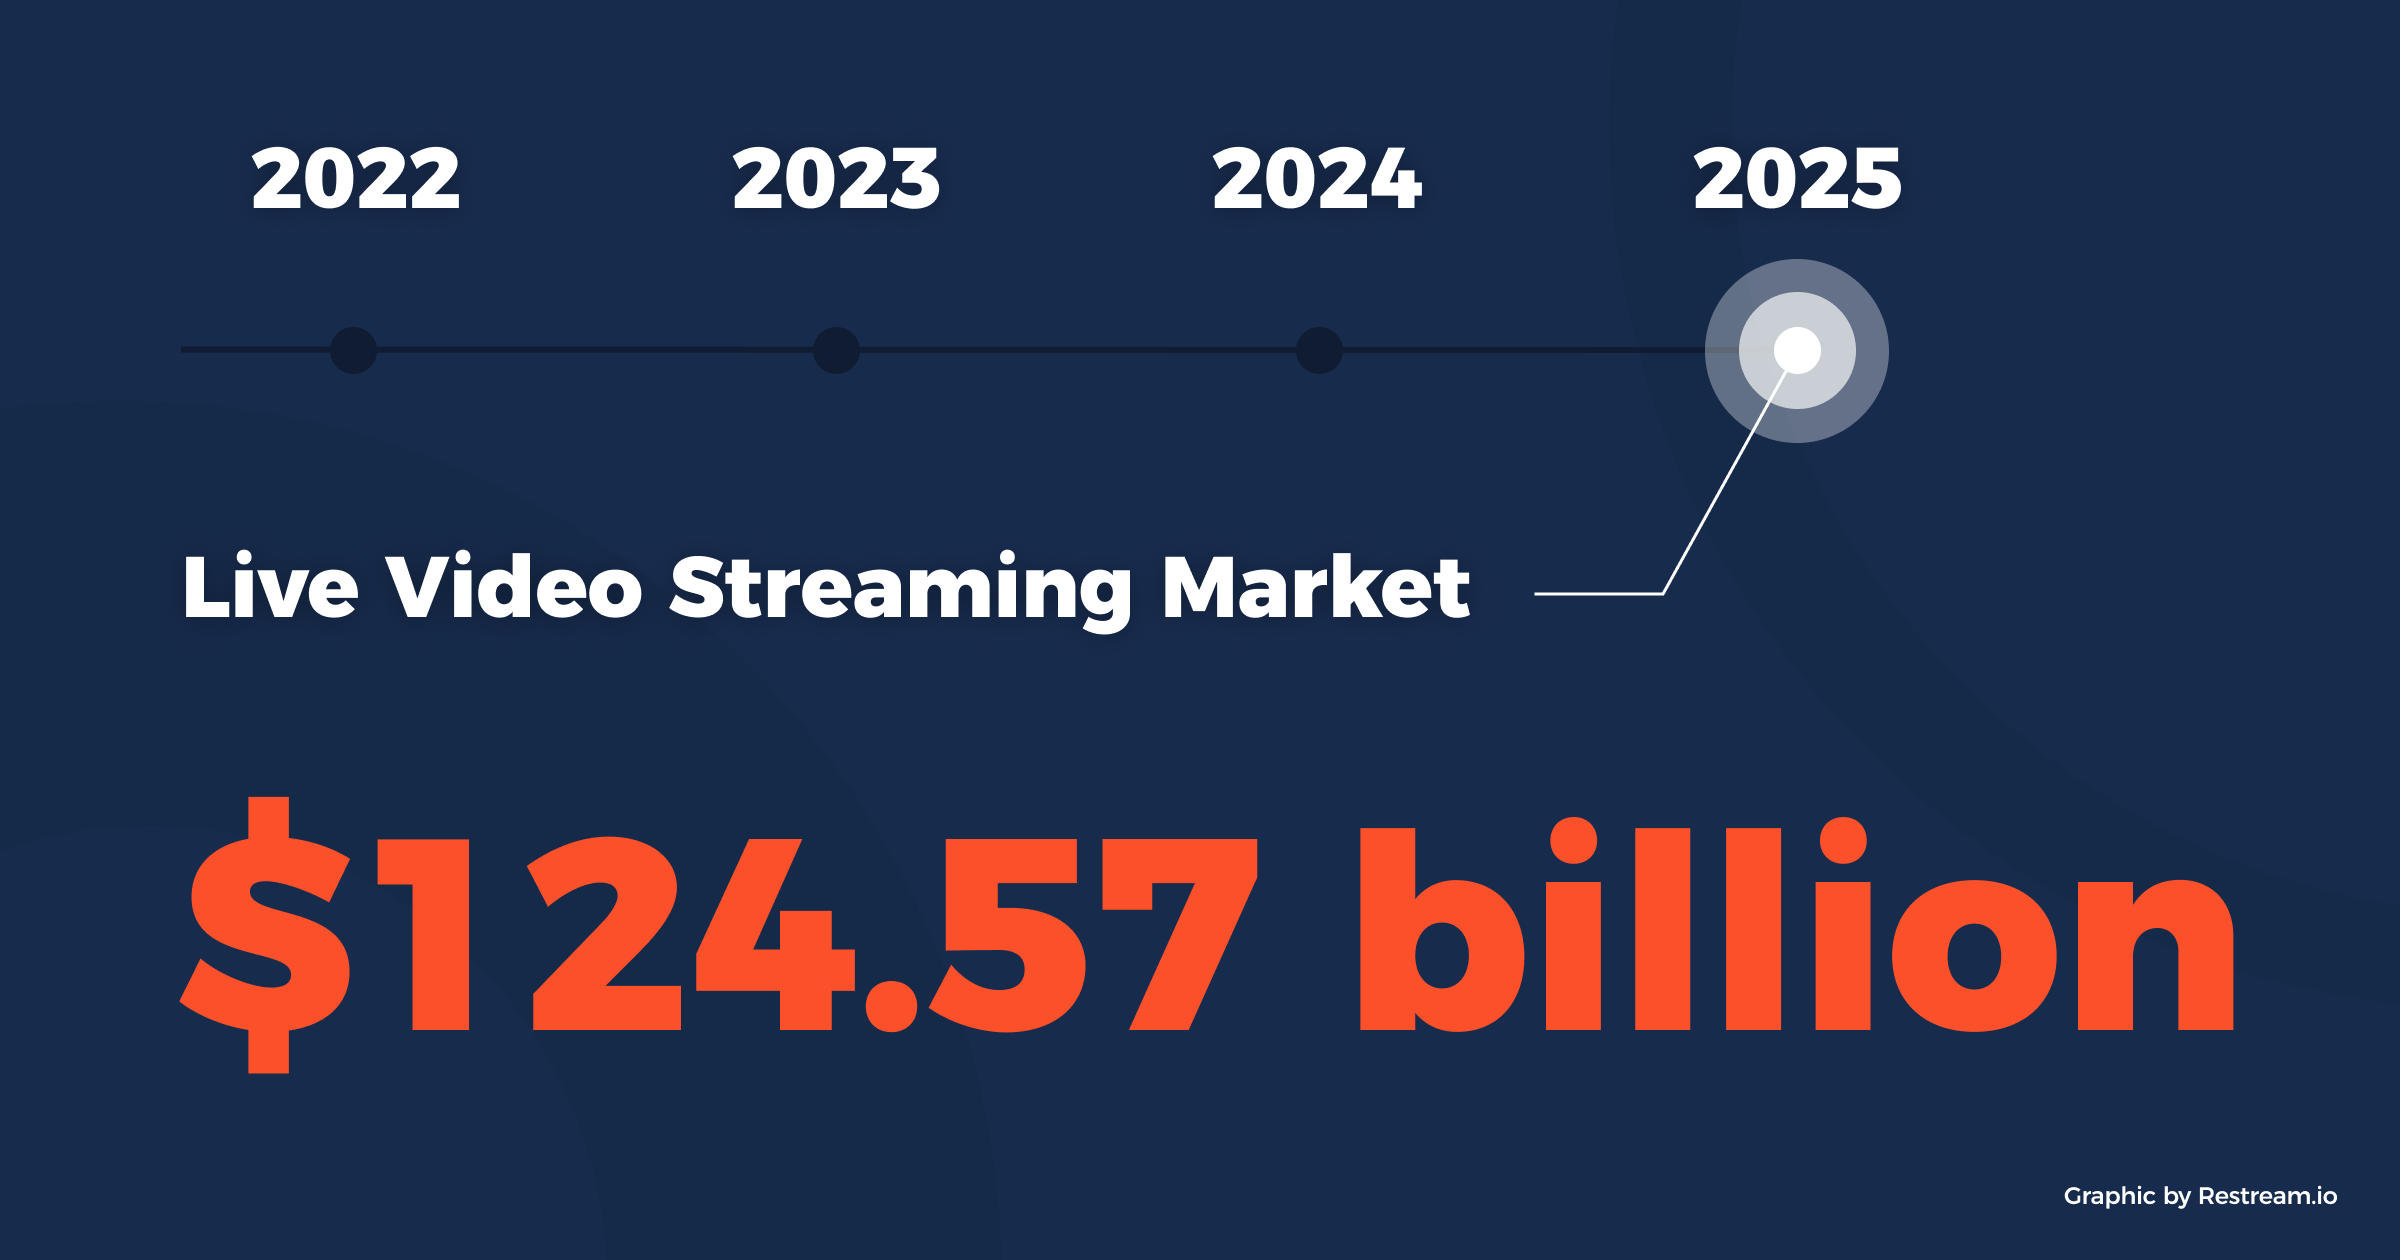 Live Video Streaming Market will be . $124.57 billion by 2025